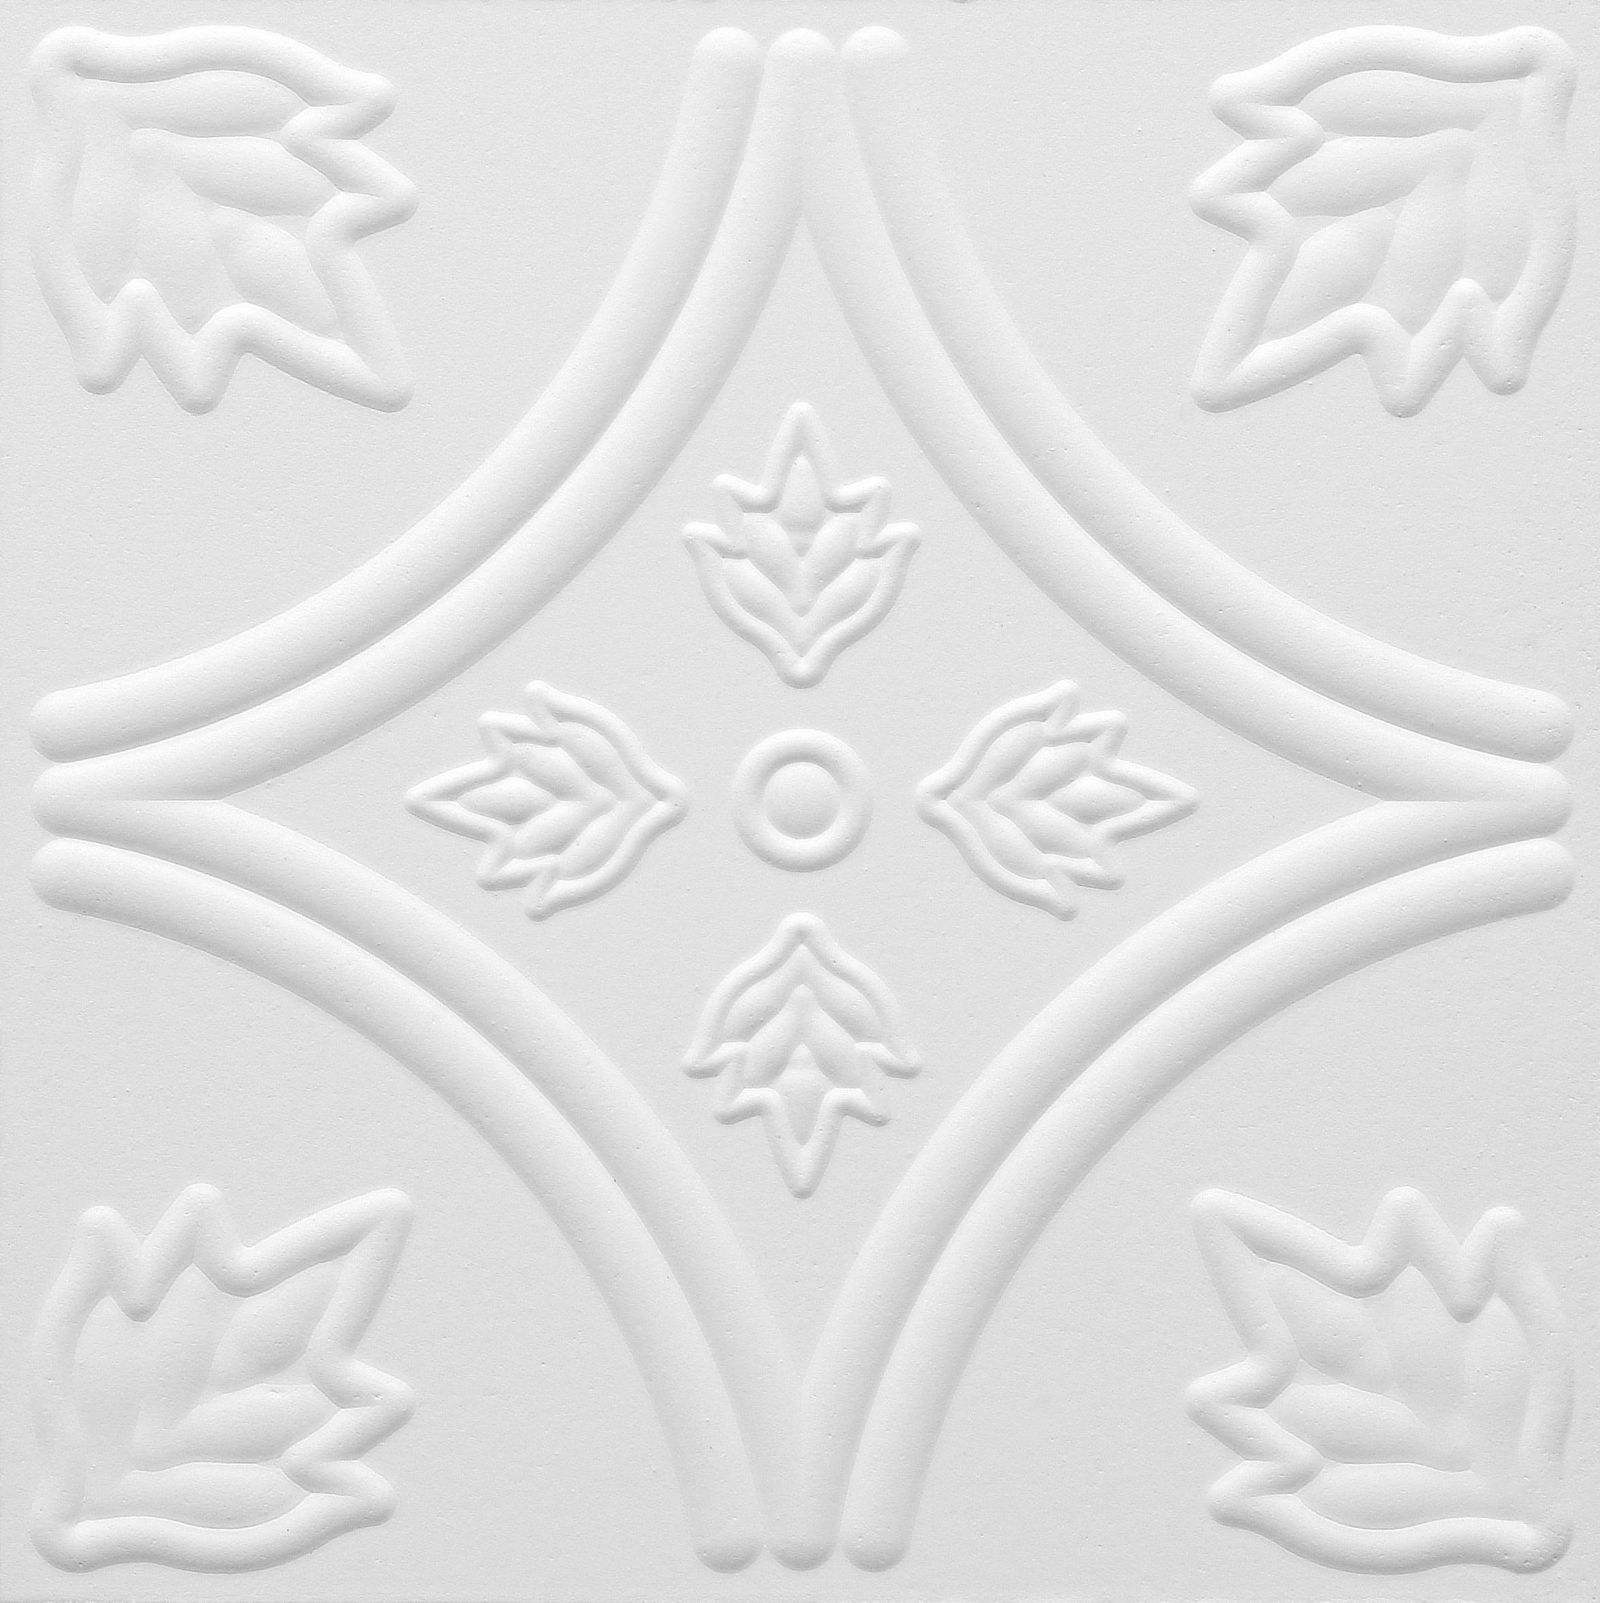 Armstrong ceiling tile patterns httpcreativechairsandtables armstrong ceiling tile patterns dailygadgetfo Gallery